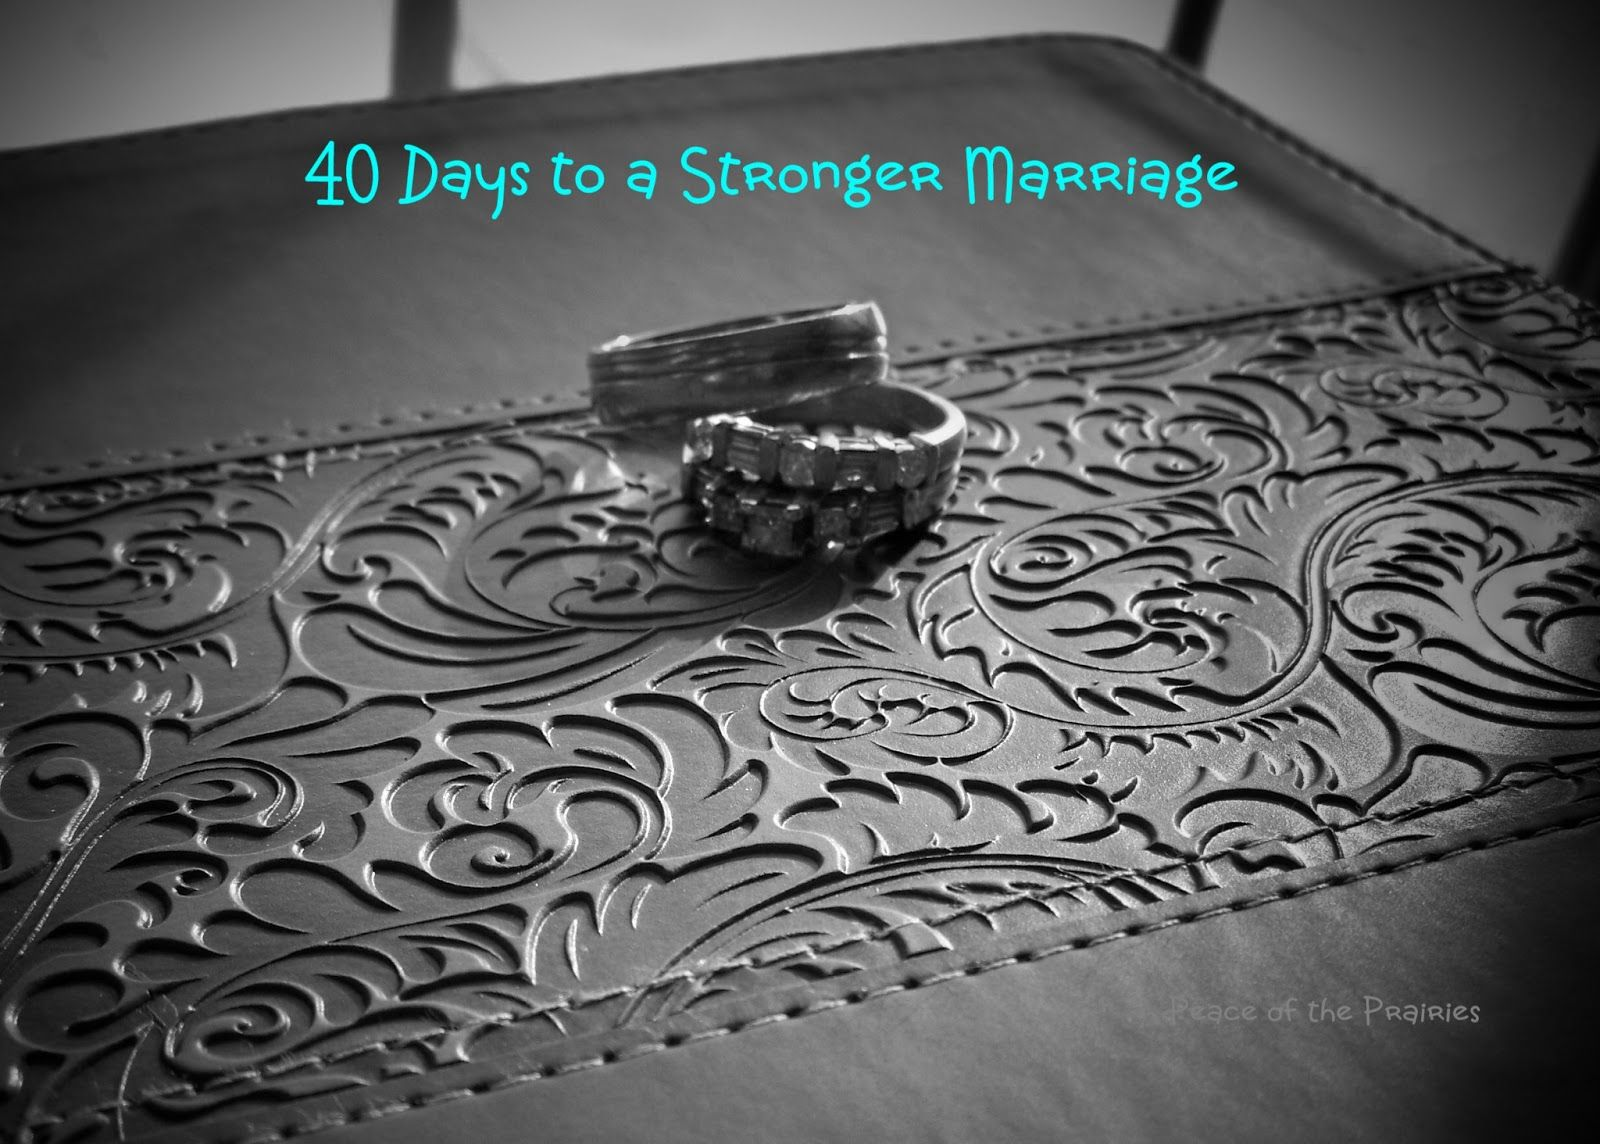 Peace of the Prairies: 40 Days to a Stronger Marriage ~ Day 36